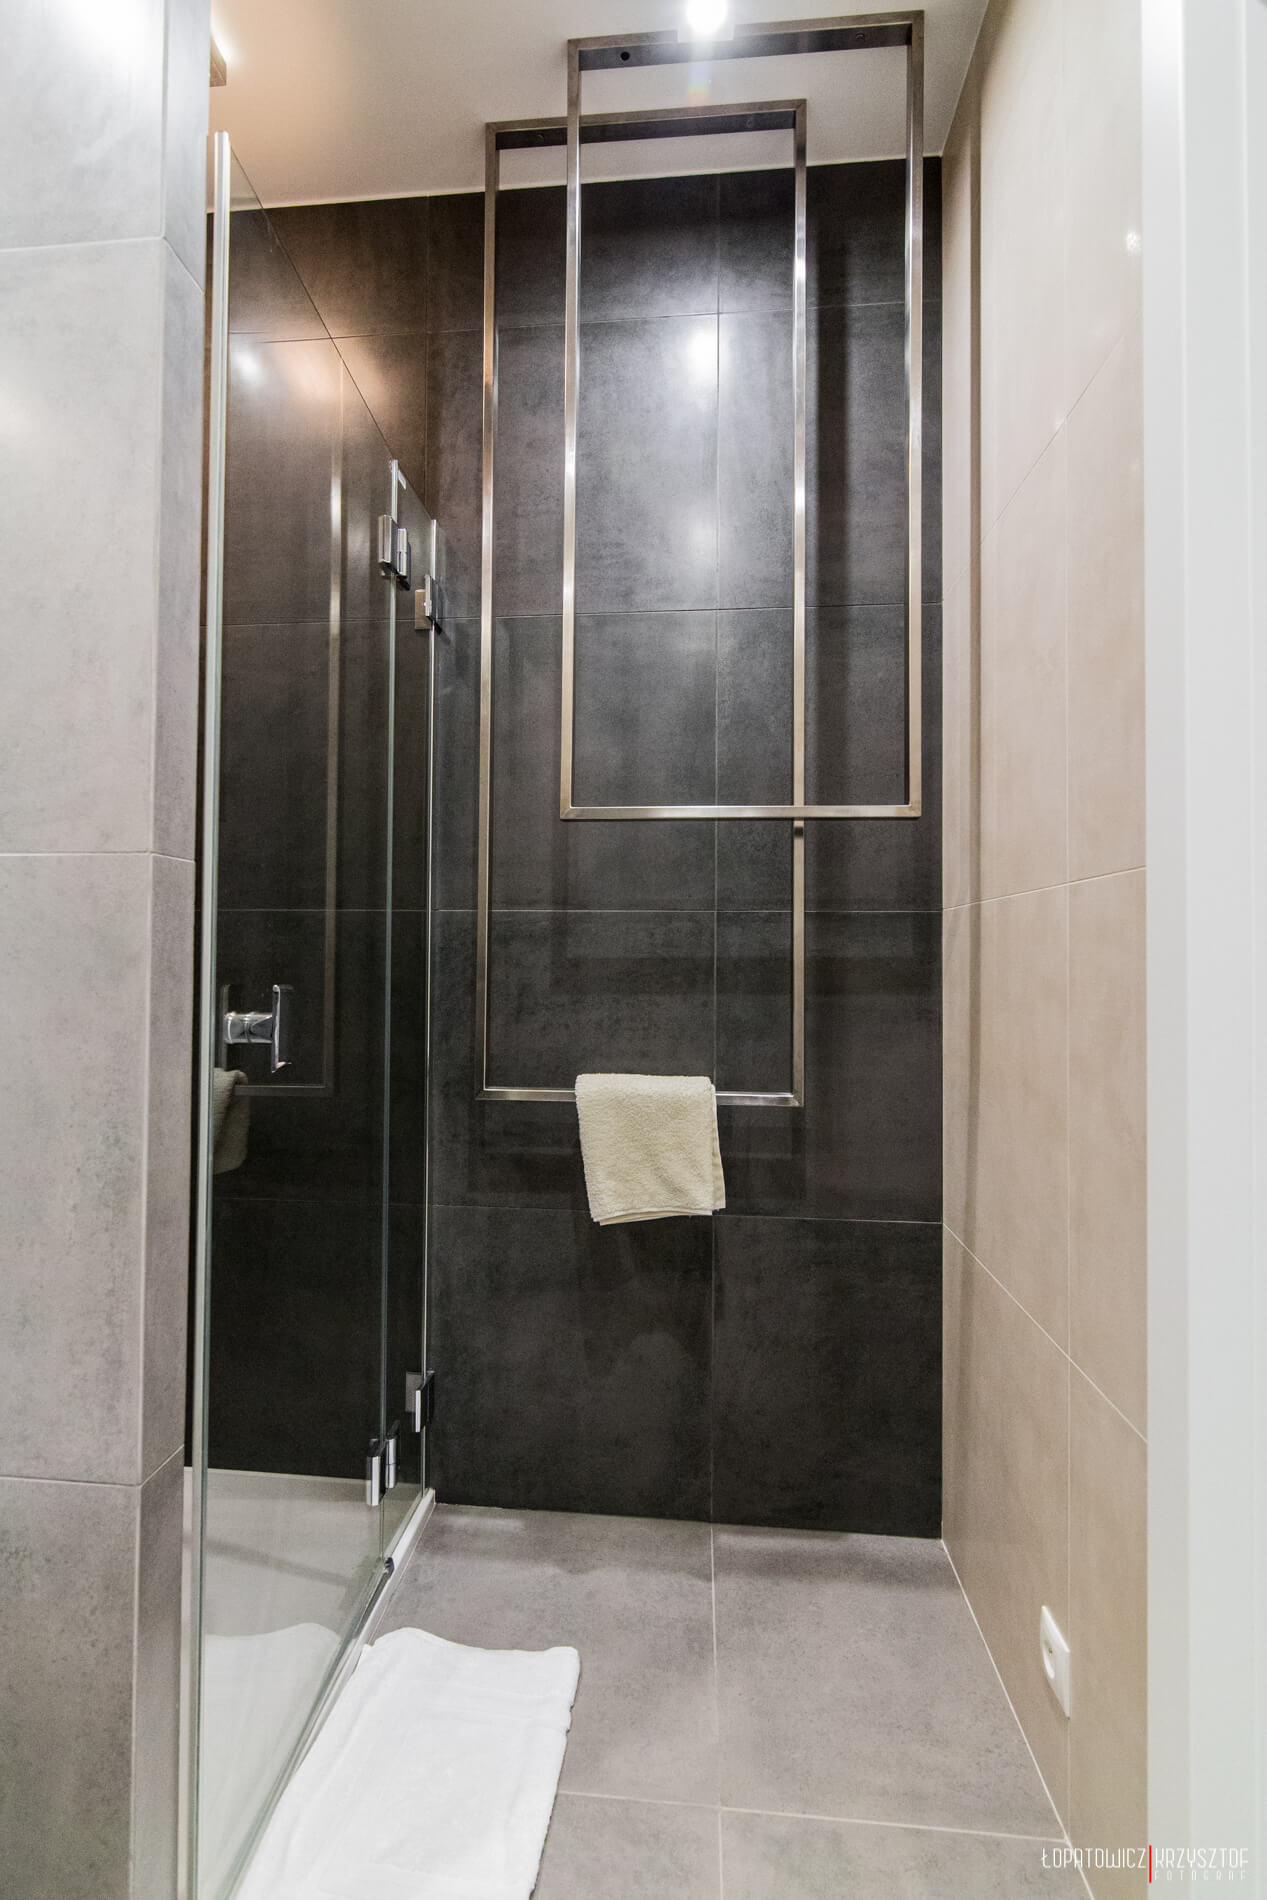 Glass door shower stands next to wall-mounted artistic metal towel holders.